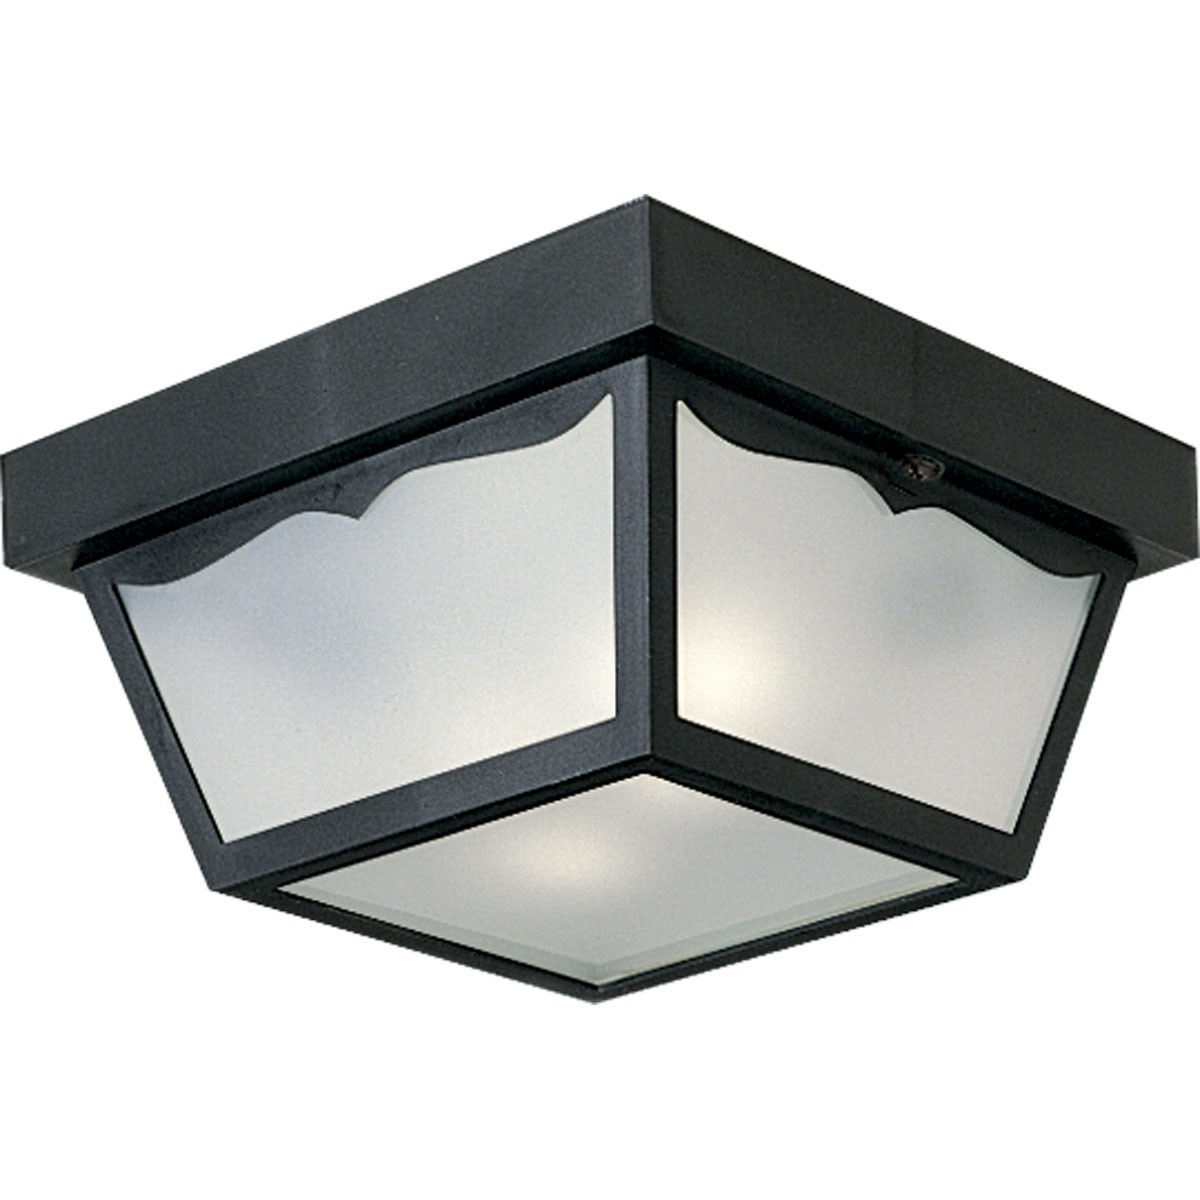 Inspiration about 60W Outdoor Flush Mount Non Metallic Ceiling Light – Progress In Cheap Outdoor Ceiling Lights (#4 of 15)